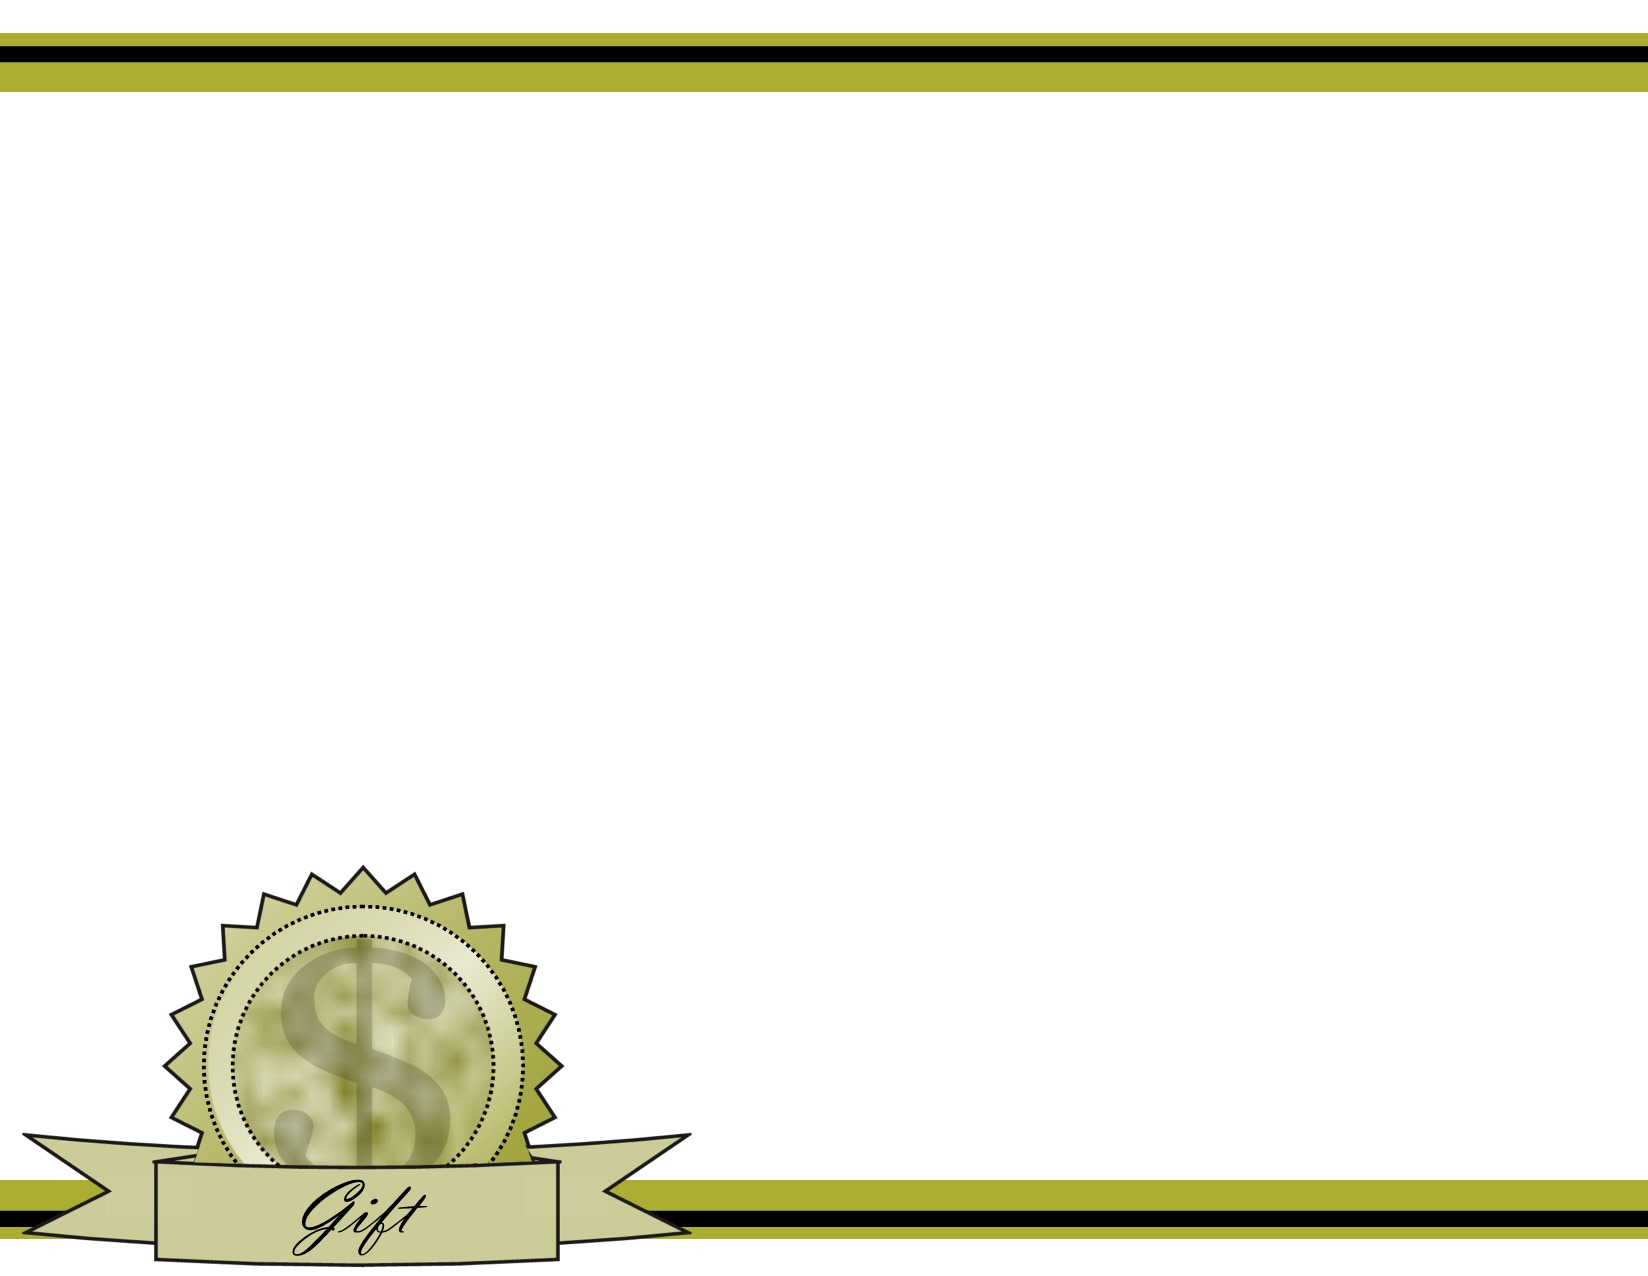 gift vouchers print gift vouchers for store school home or gift certificate